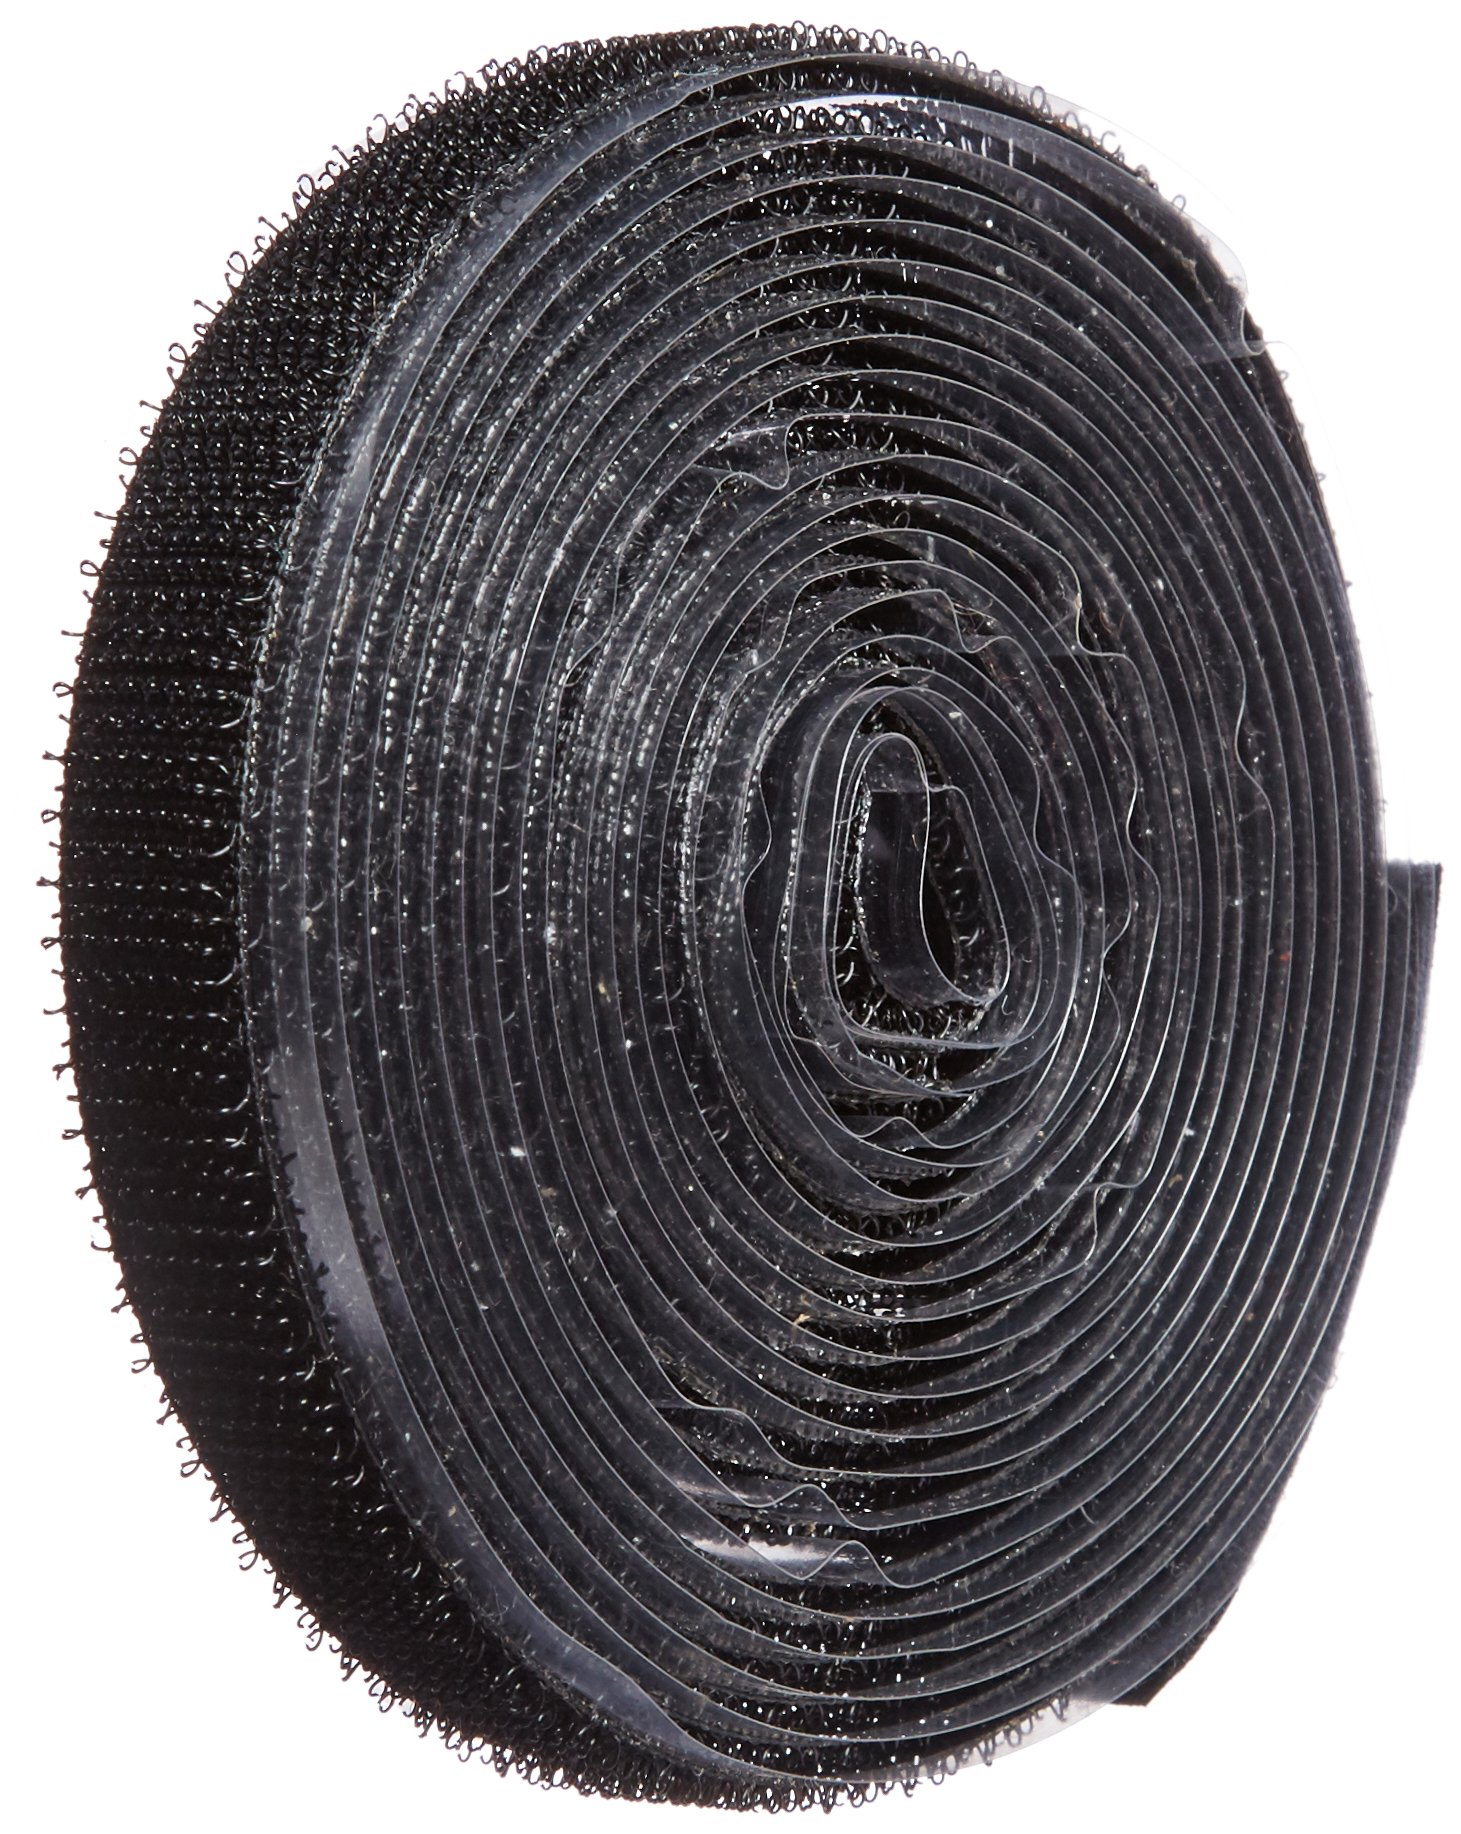 VELCRO 1001-AP-PSA/H Black Hook Type Nylon Woven Fastening Tape, Pressure Sensitive Adhesive Back, 1/2'' Wide, 10' Length